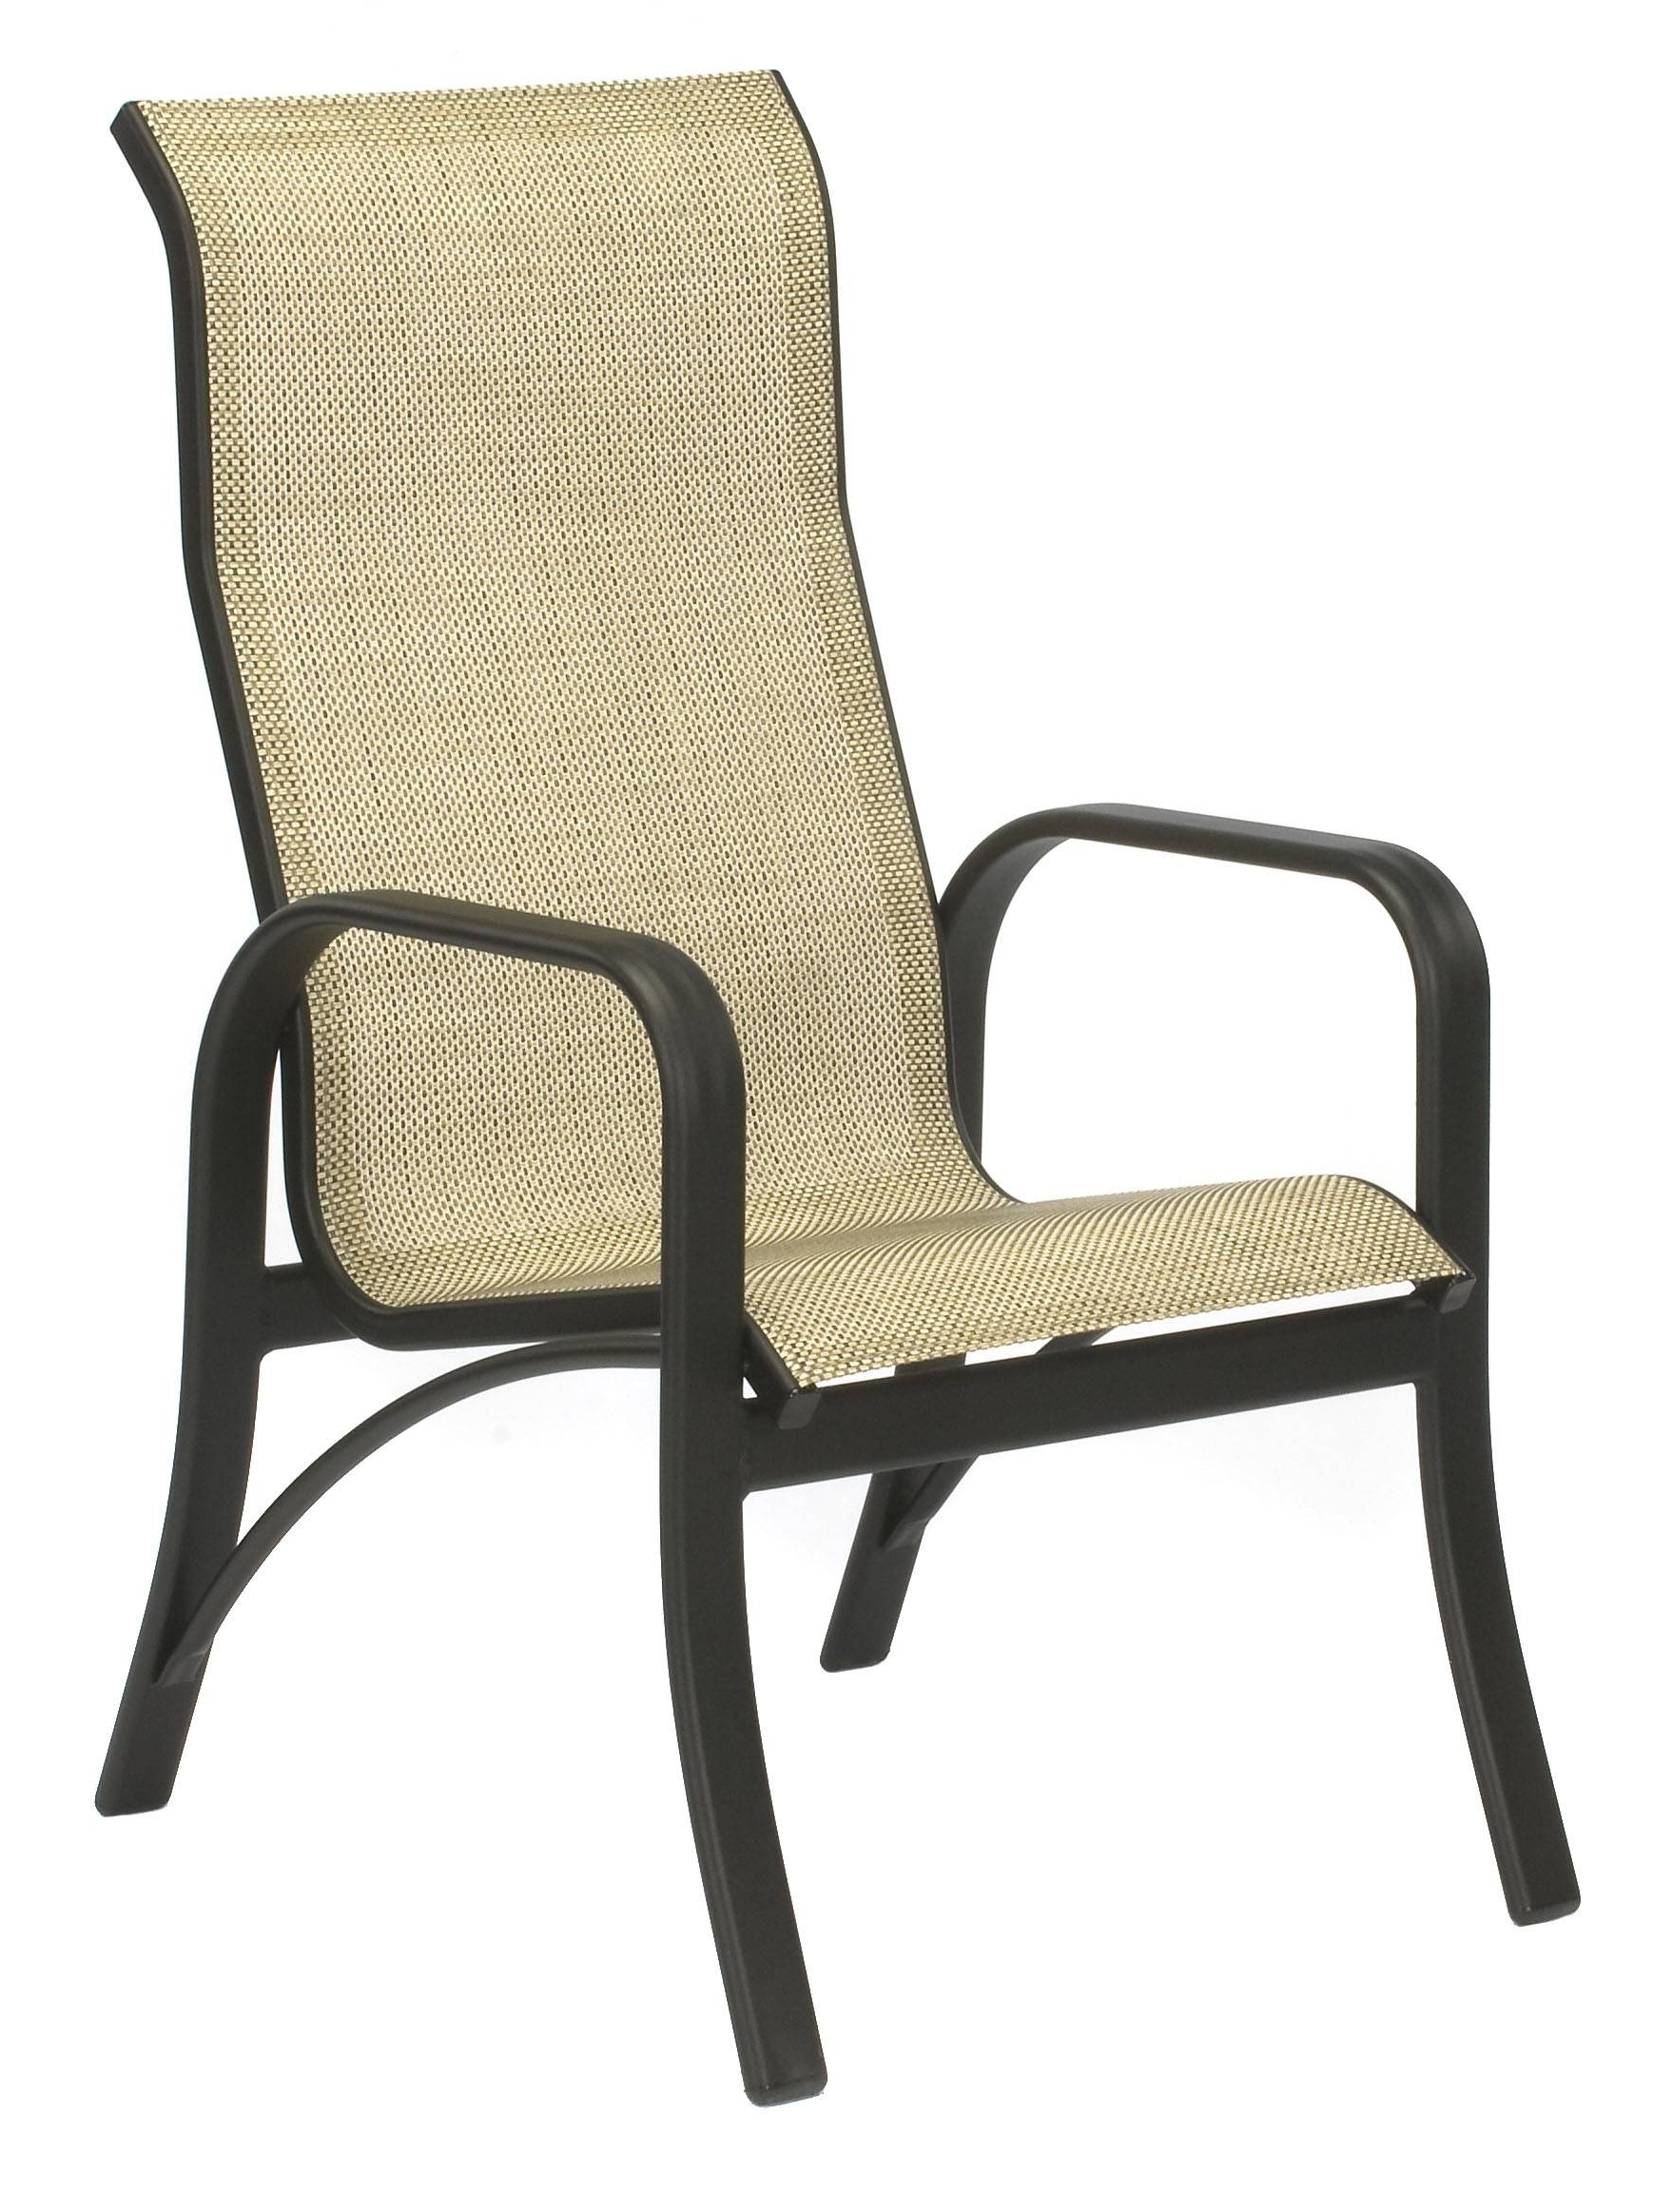 Well Liked Sling Black Outdoor Chairs Bamboo Set Of Walmart Marvellous Swivel Regarding Patio Sling Rocking Chairs (View 11 of 20)